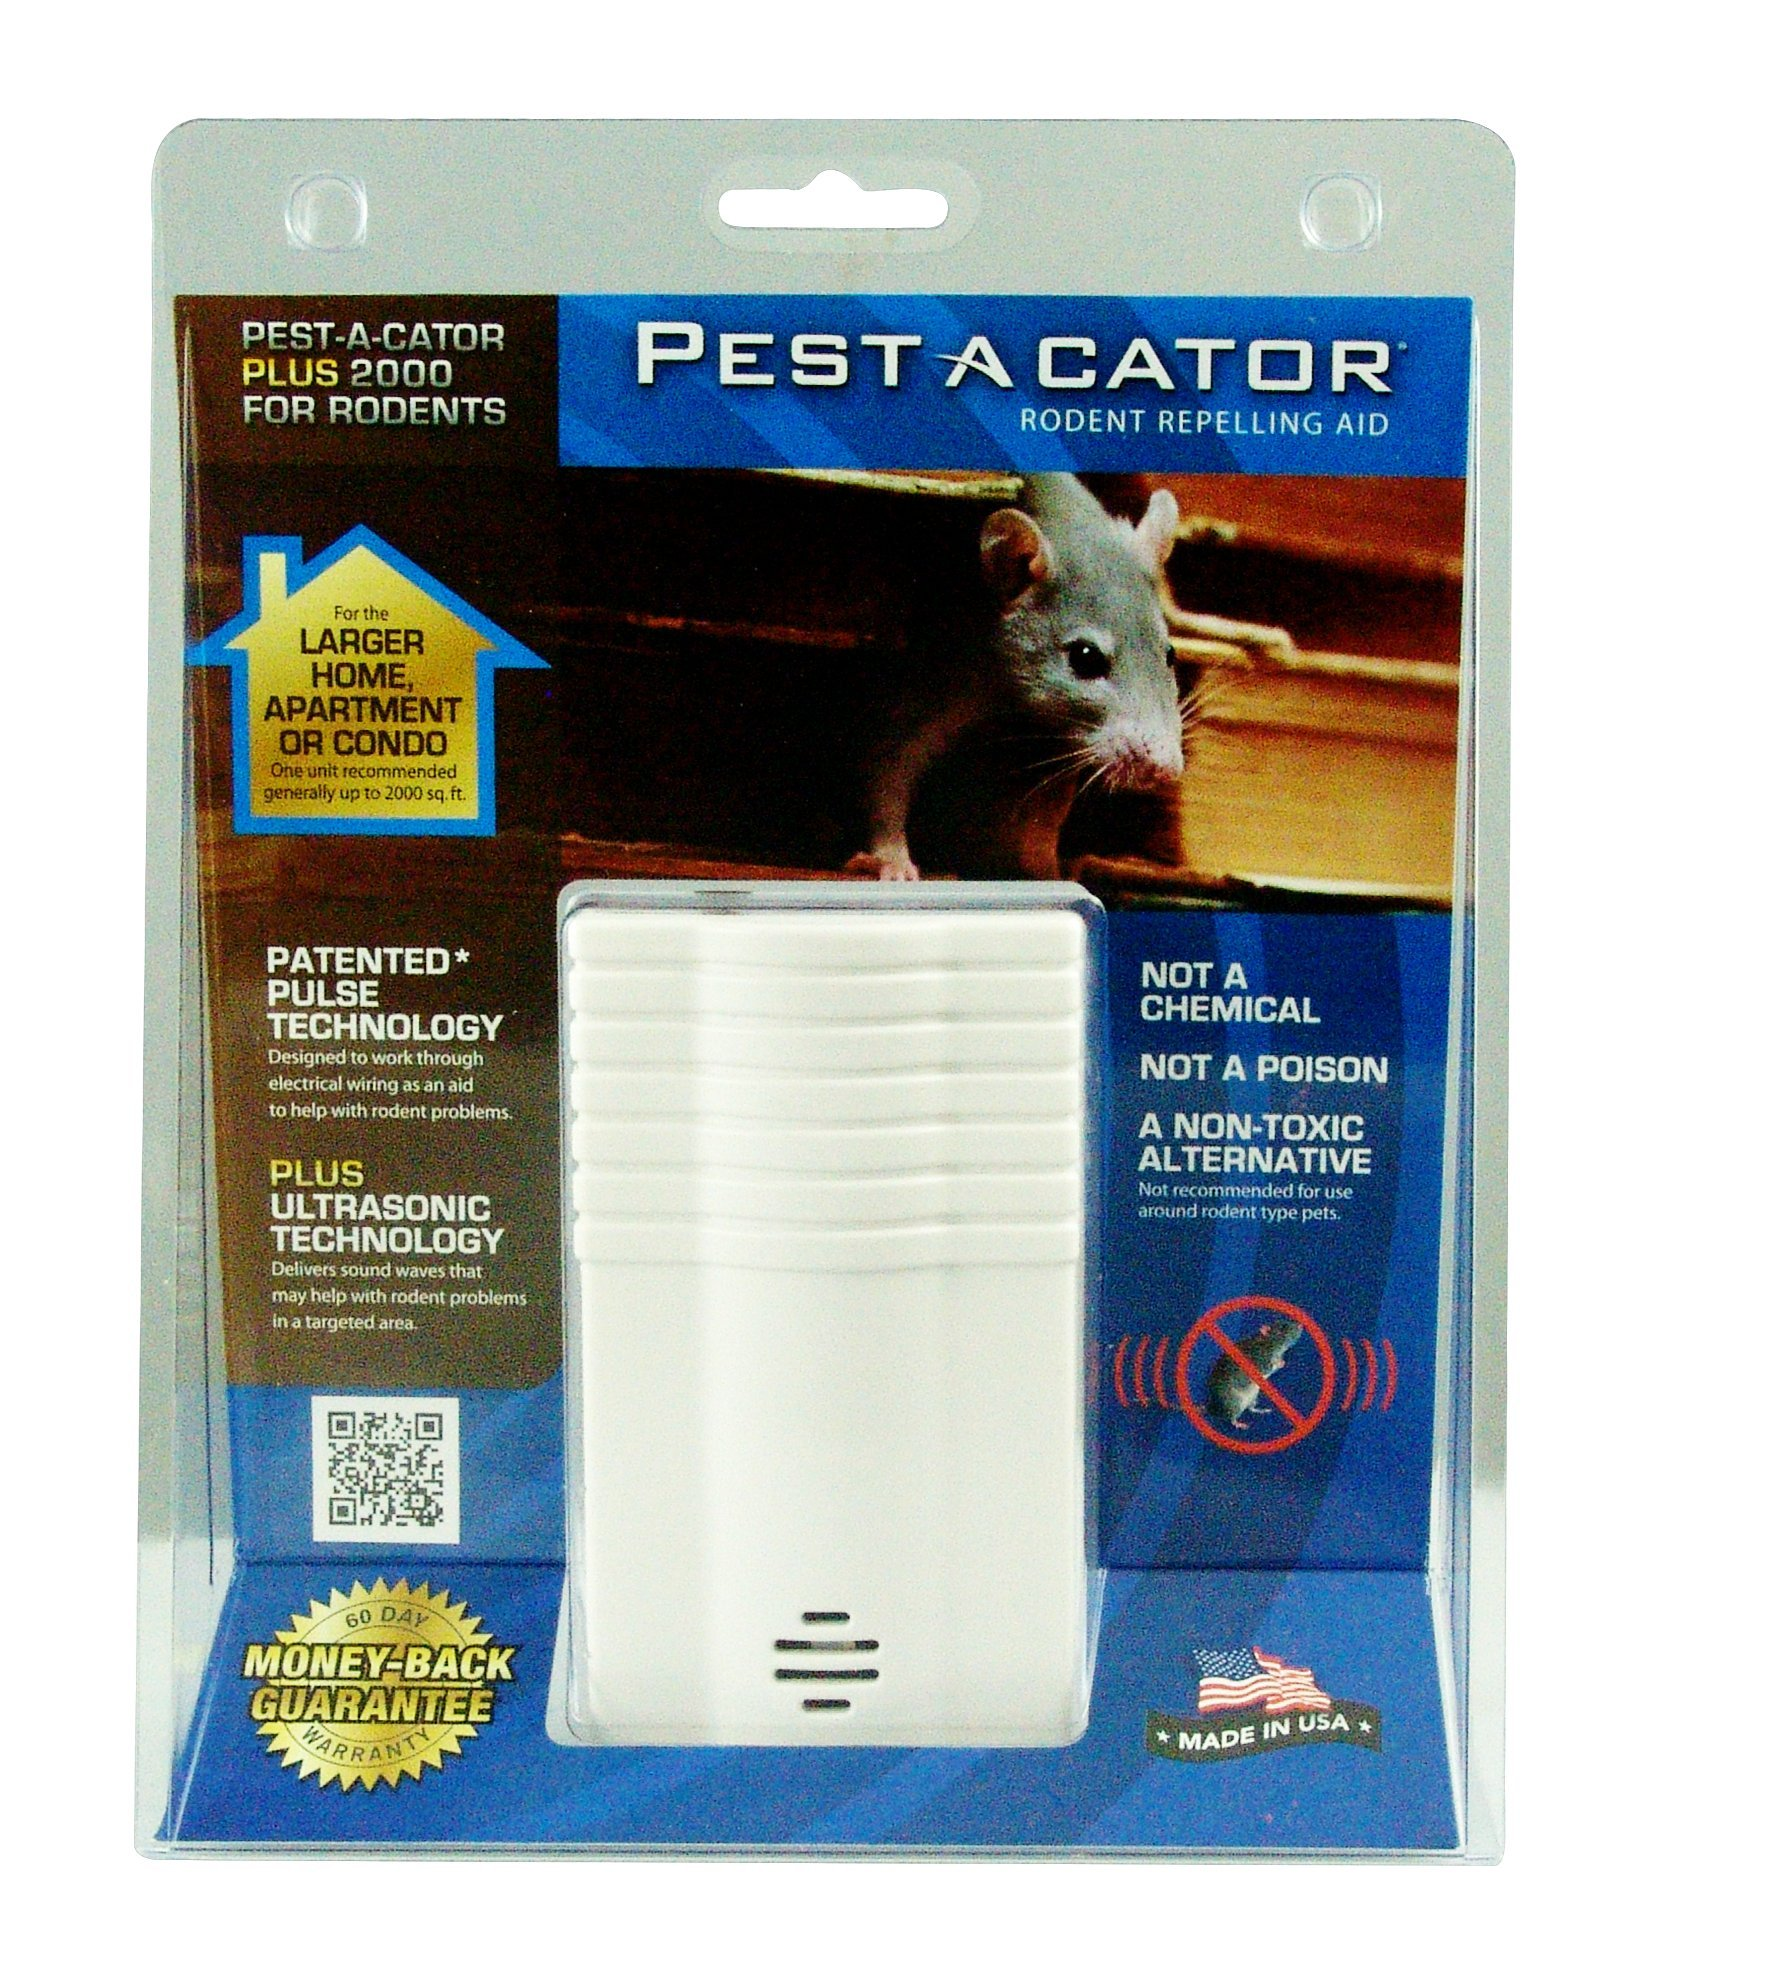 Global Instruments Pest A Cator Plus 2000 Electromagnetic/Ultrasonic Rodent Repeller For Larger Areas